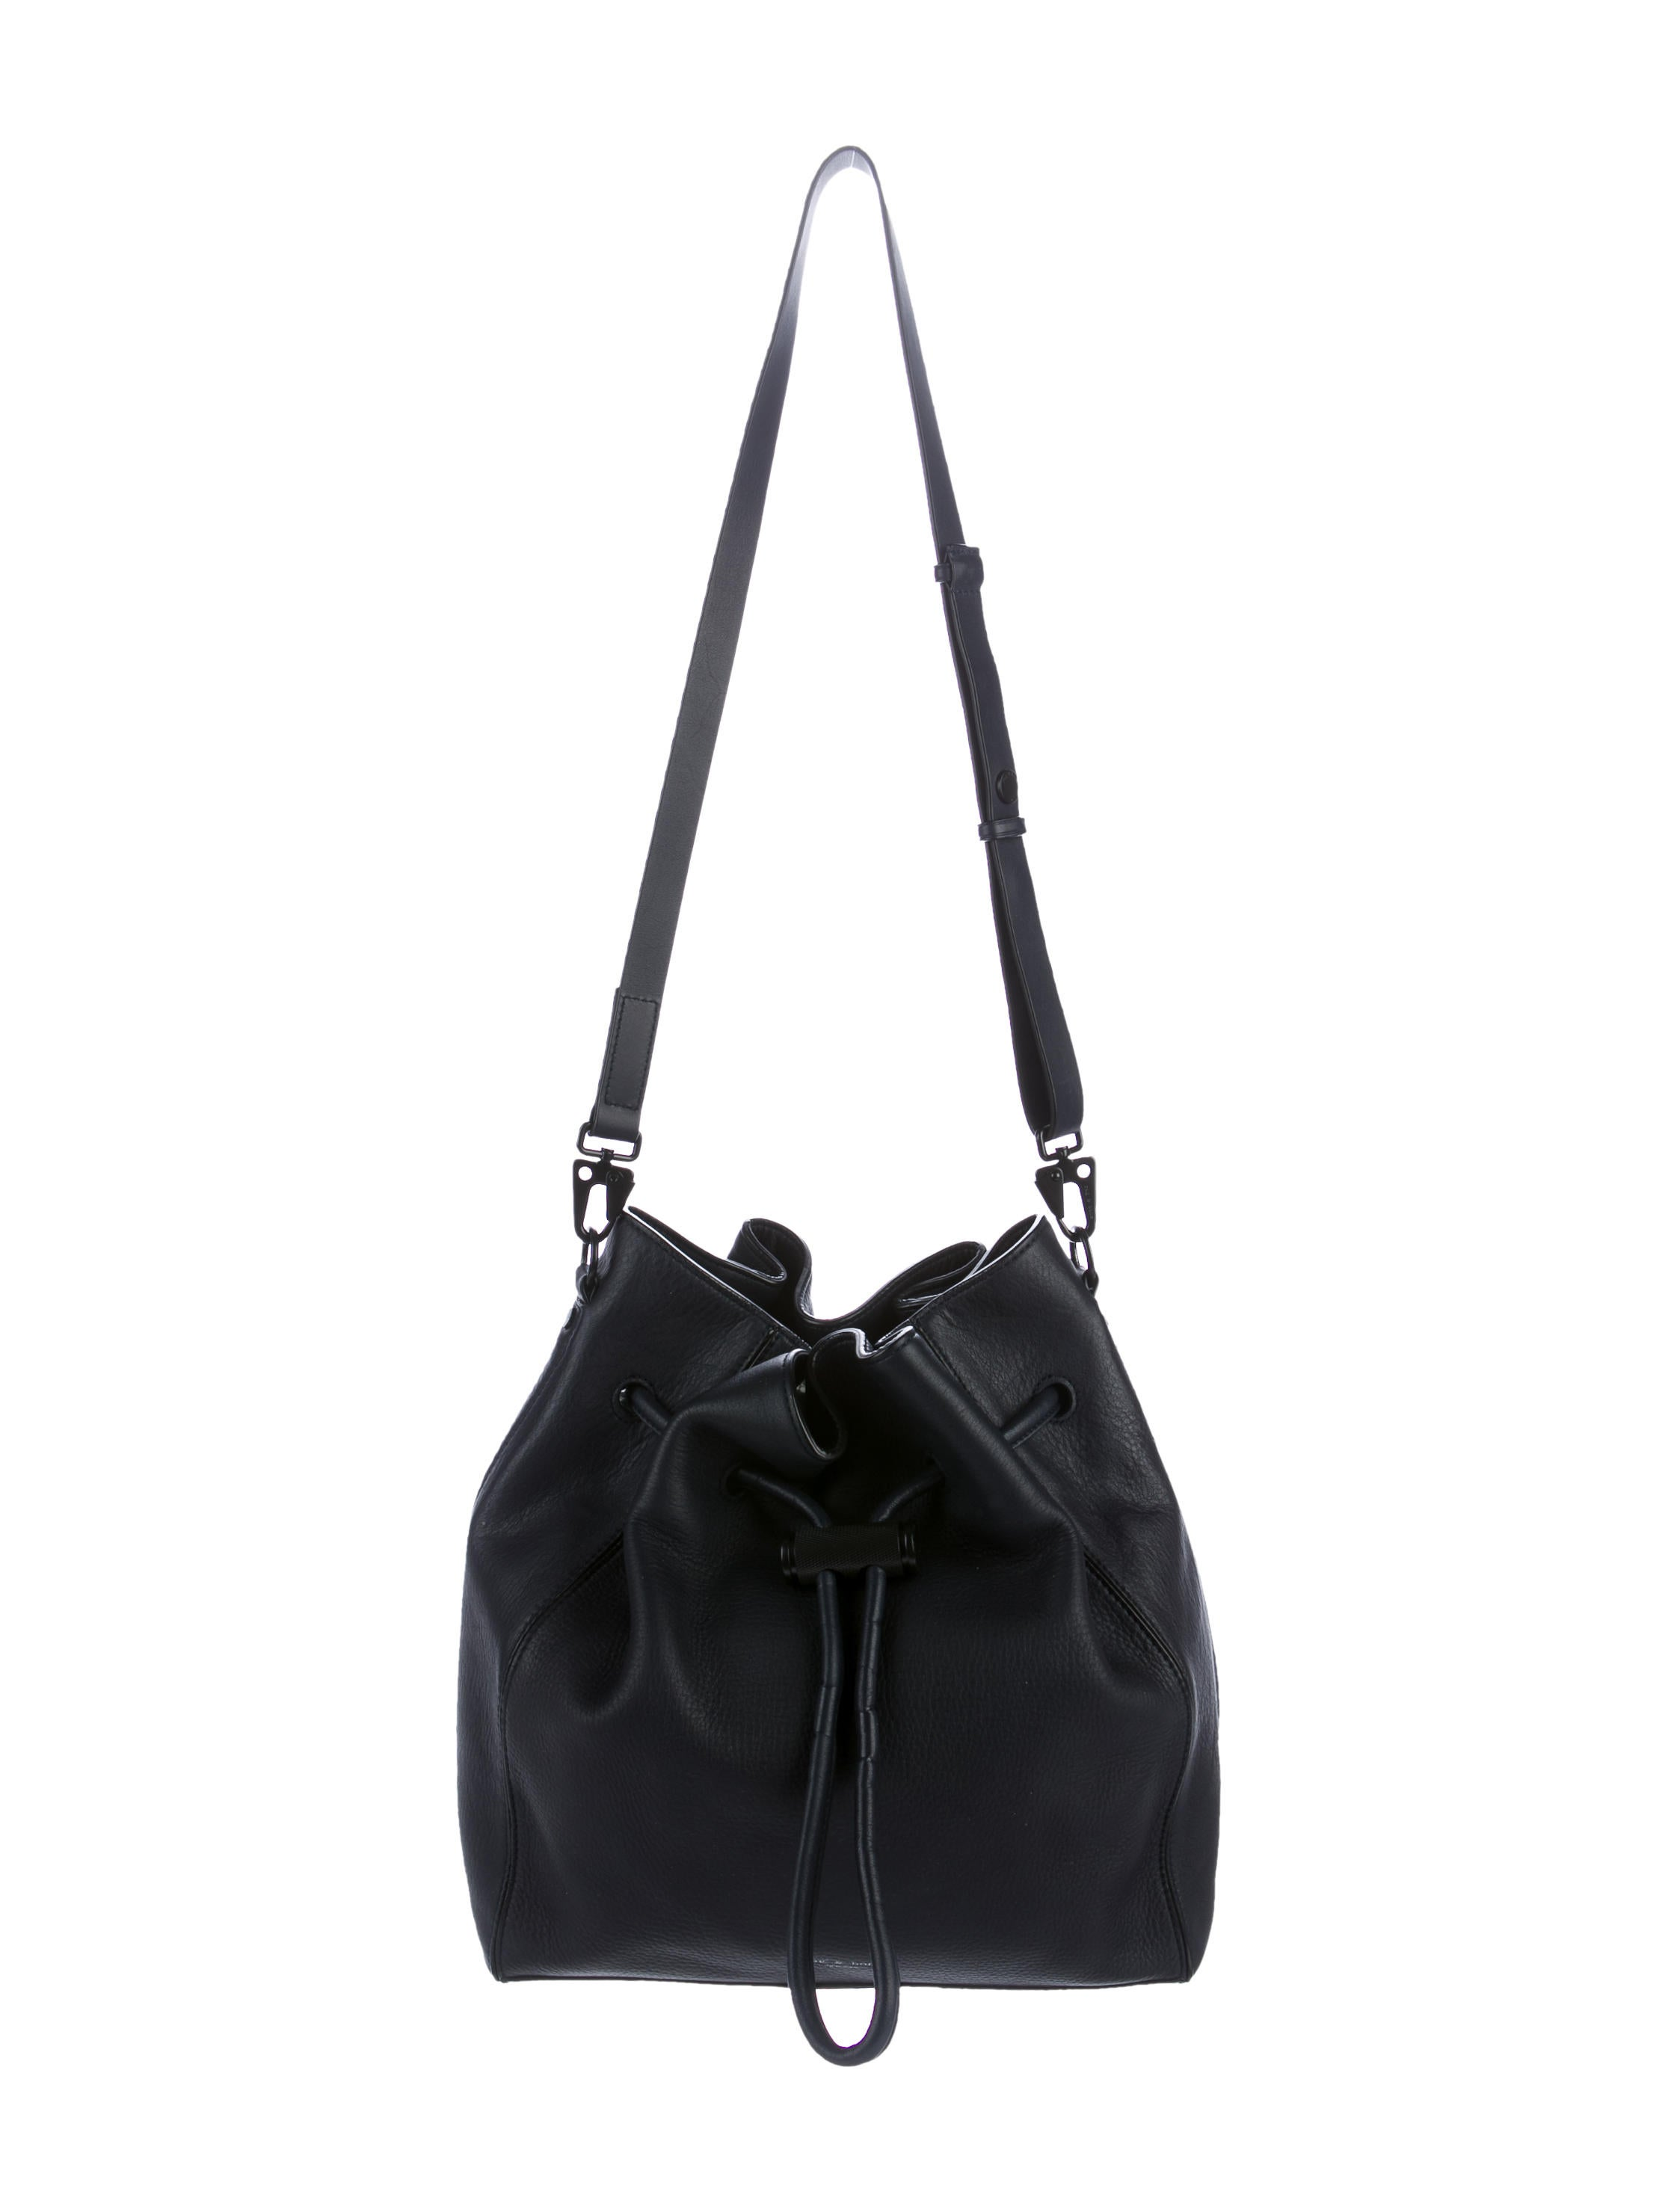 Find great deals on eBay for bucket purse. Shop with confidence.